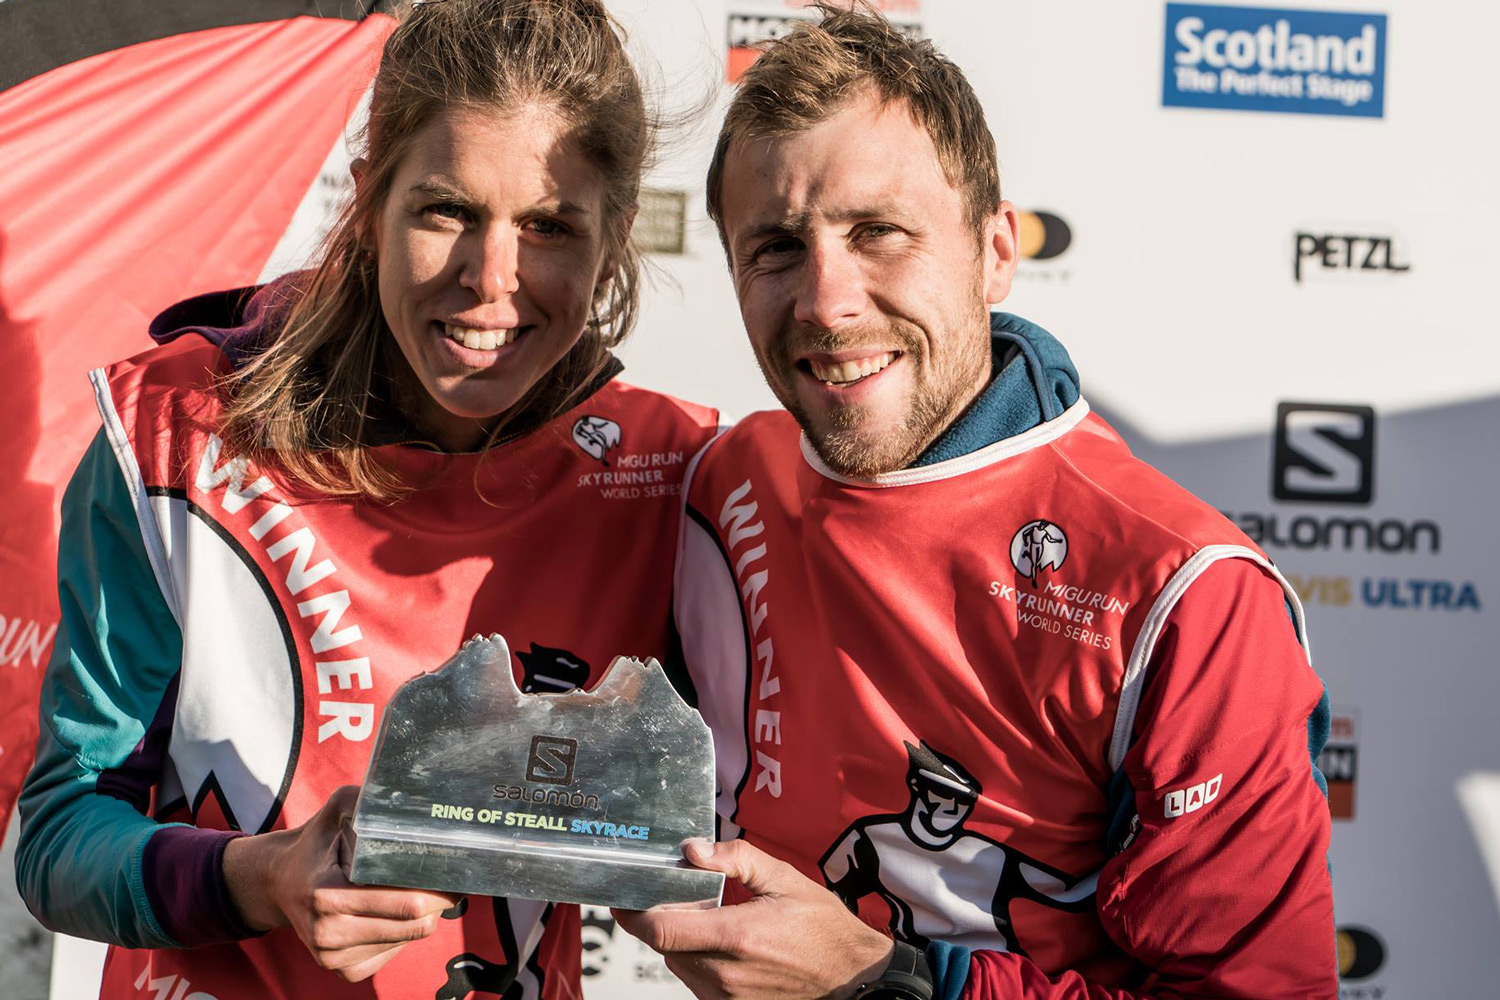 Laura Orgué and Stian Angermund-Vik, race winners of the Salomon Ring of Steall, valid for the Sky Classic rankings. ©iancorless.com / SWS